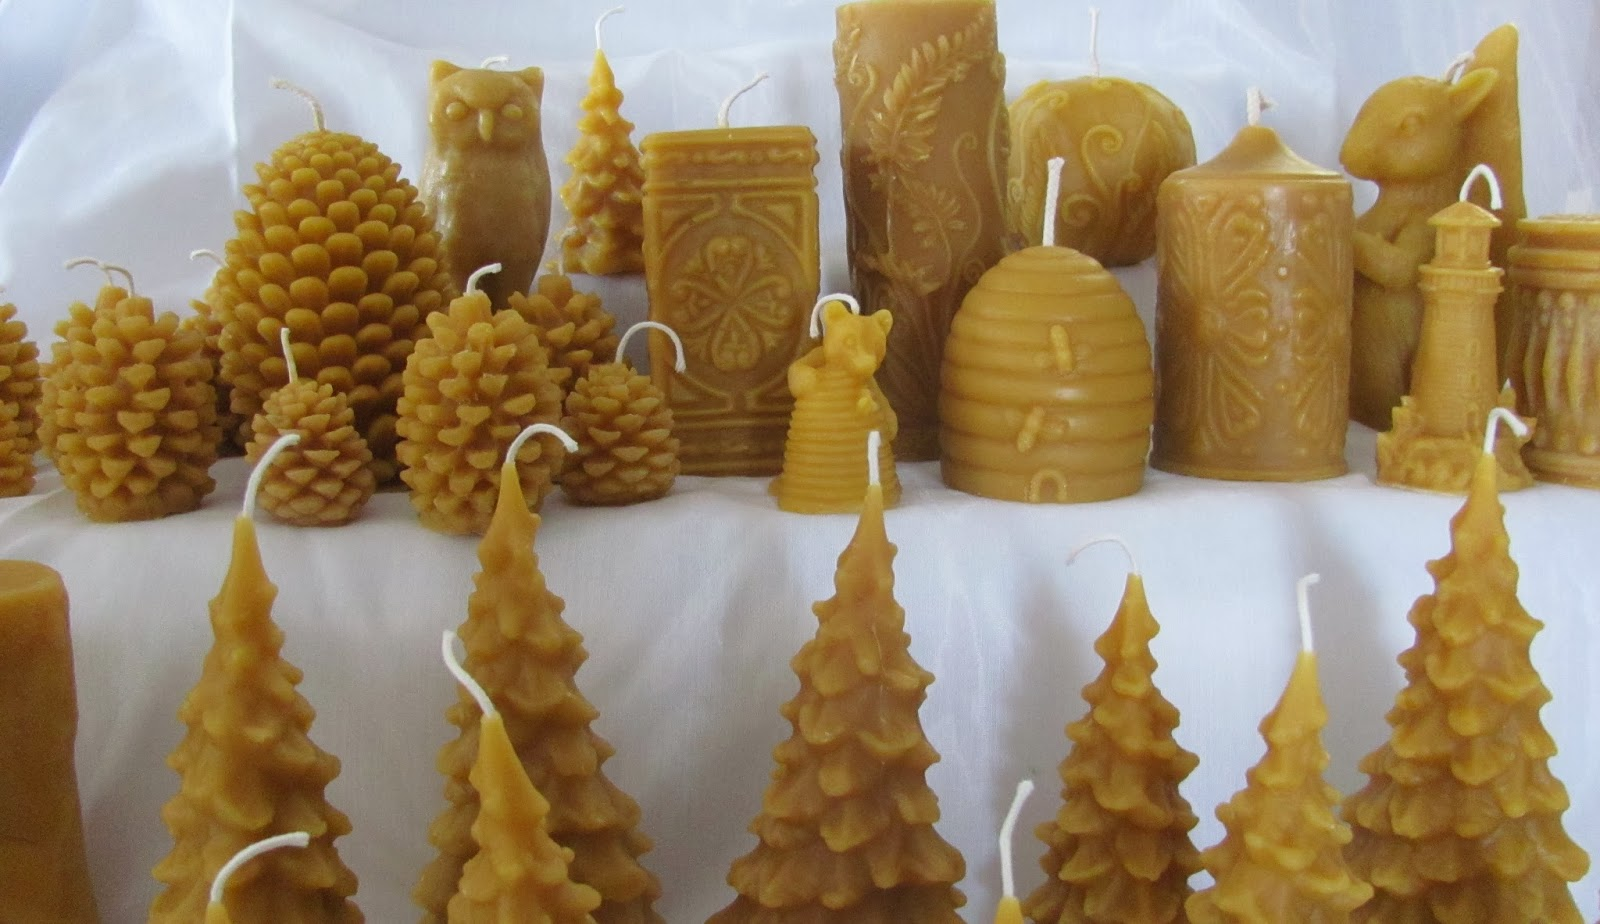 How are Beeswax Candles Better?